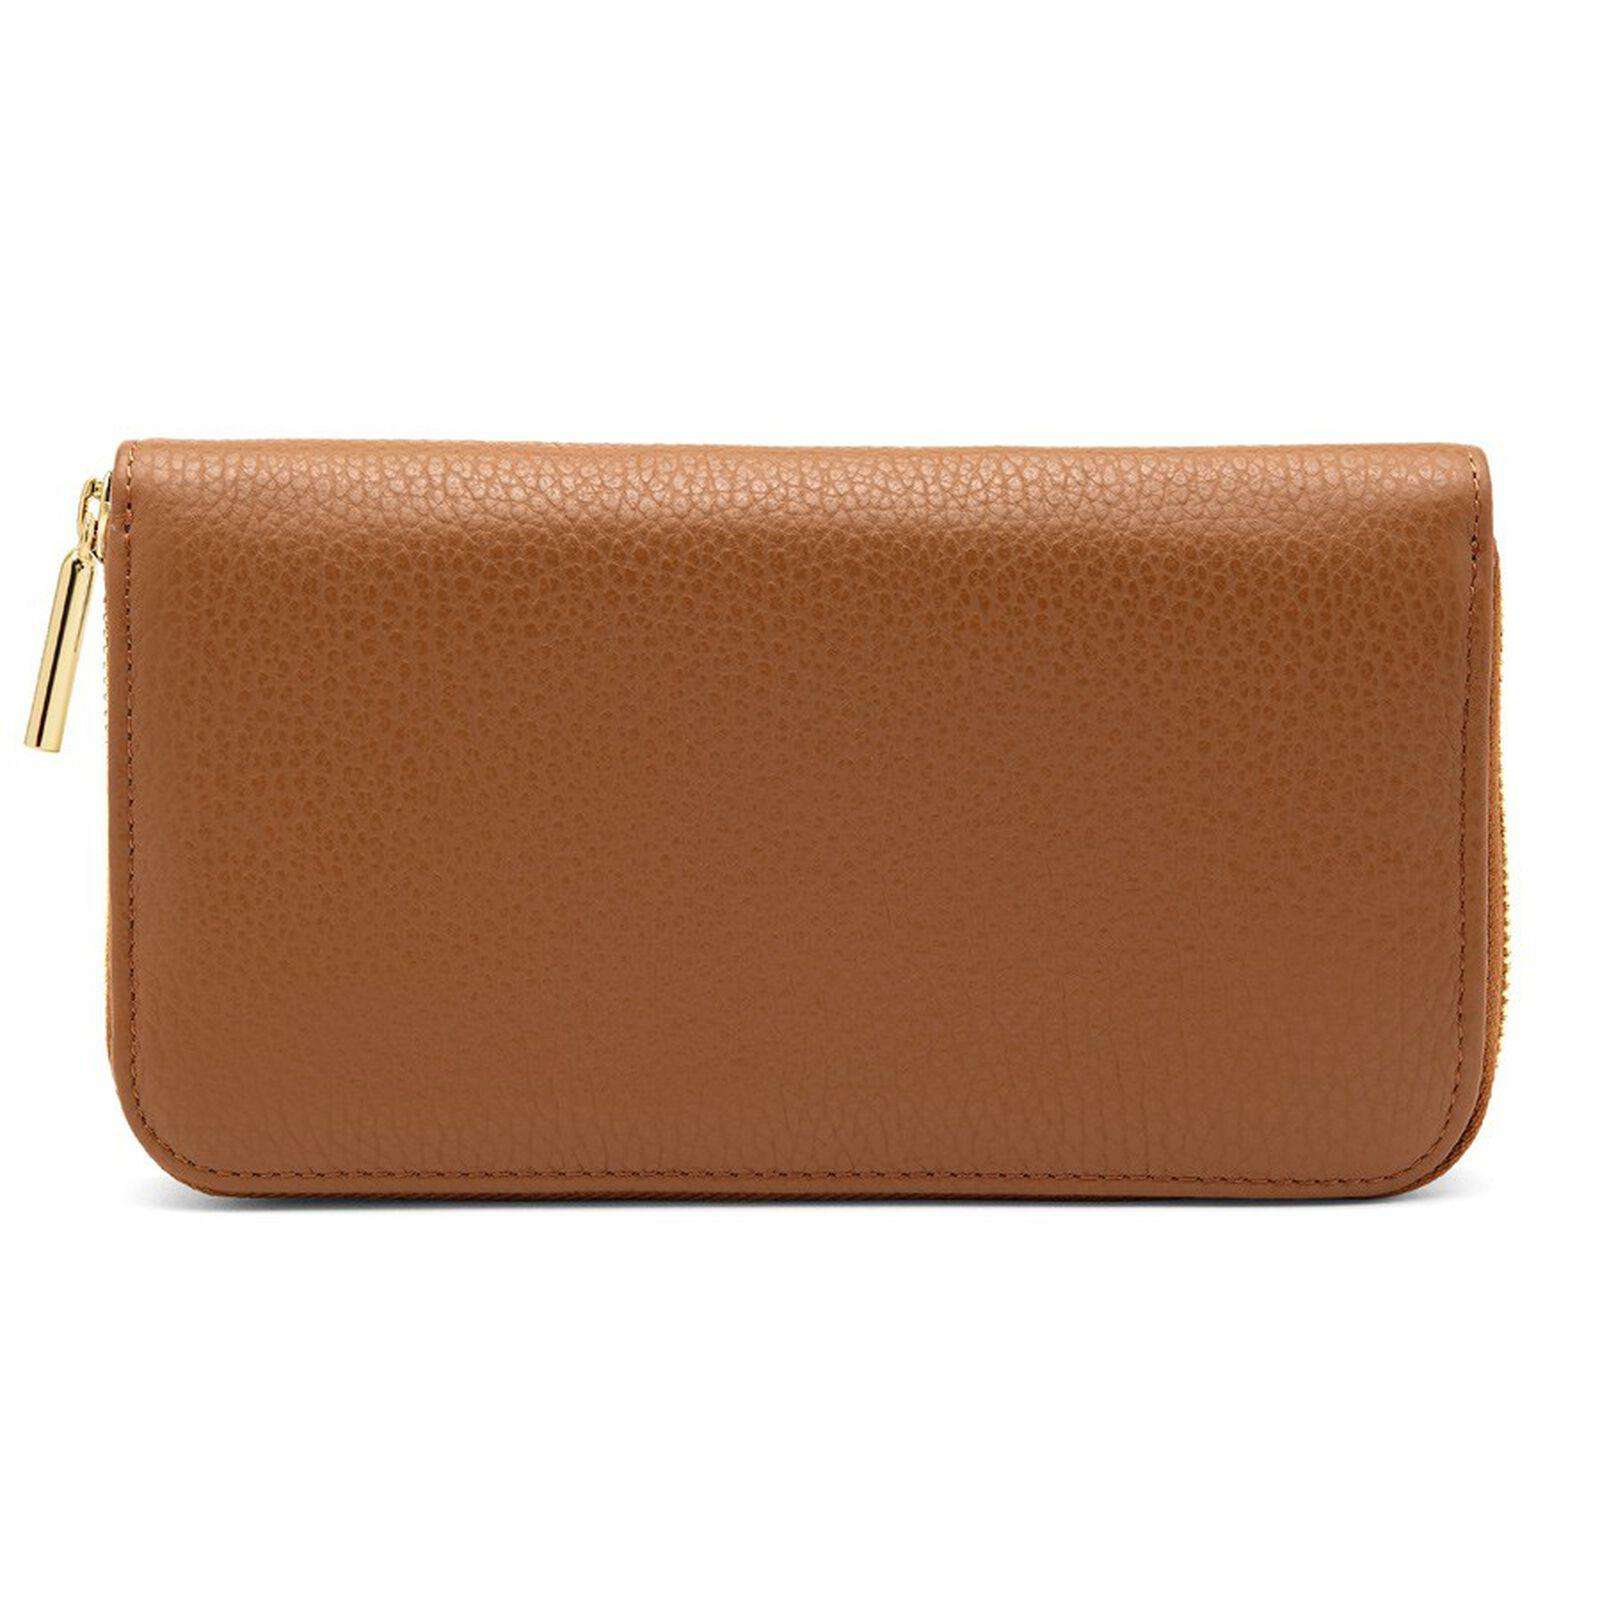 Women's Classic Zip Around Wallet in Caramel/Blush Pink | Pebbled Leather by Cuyana